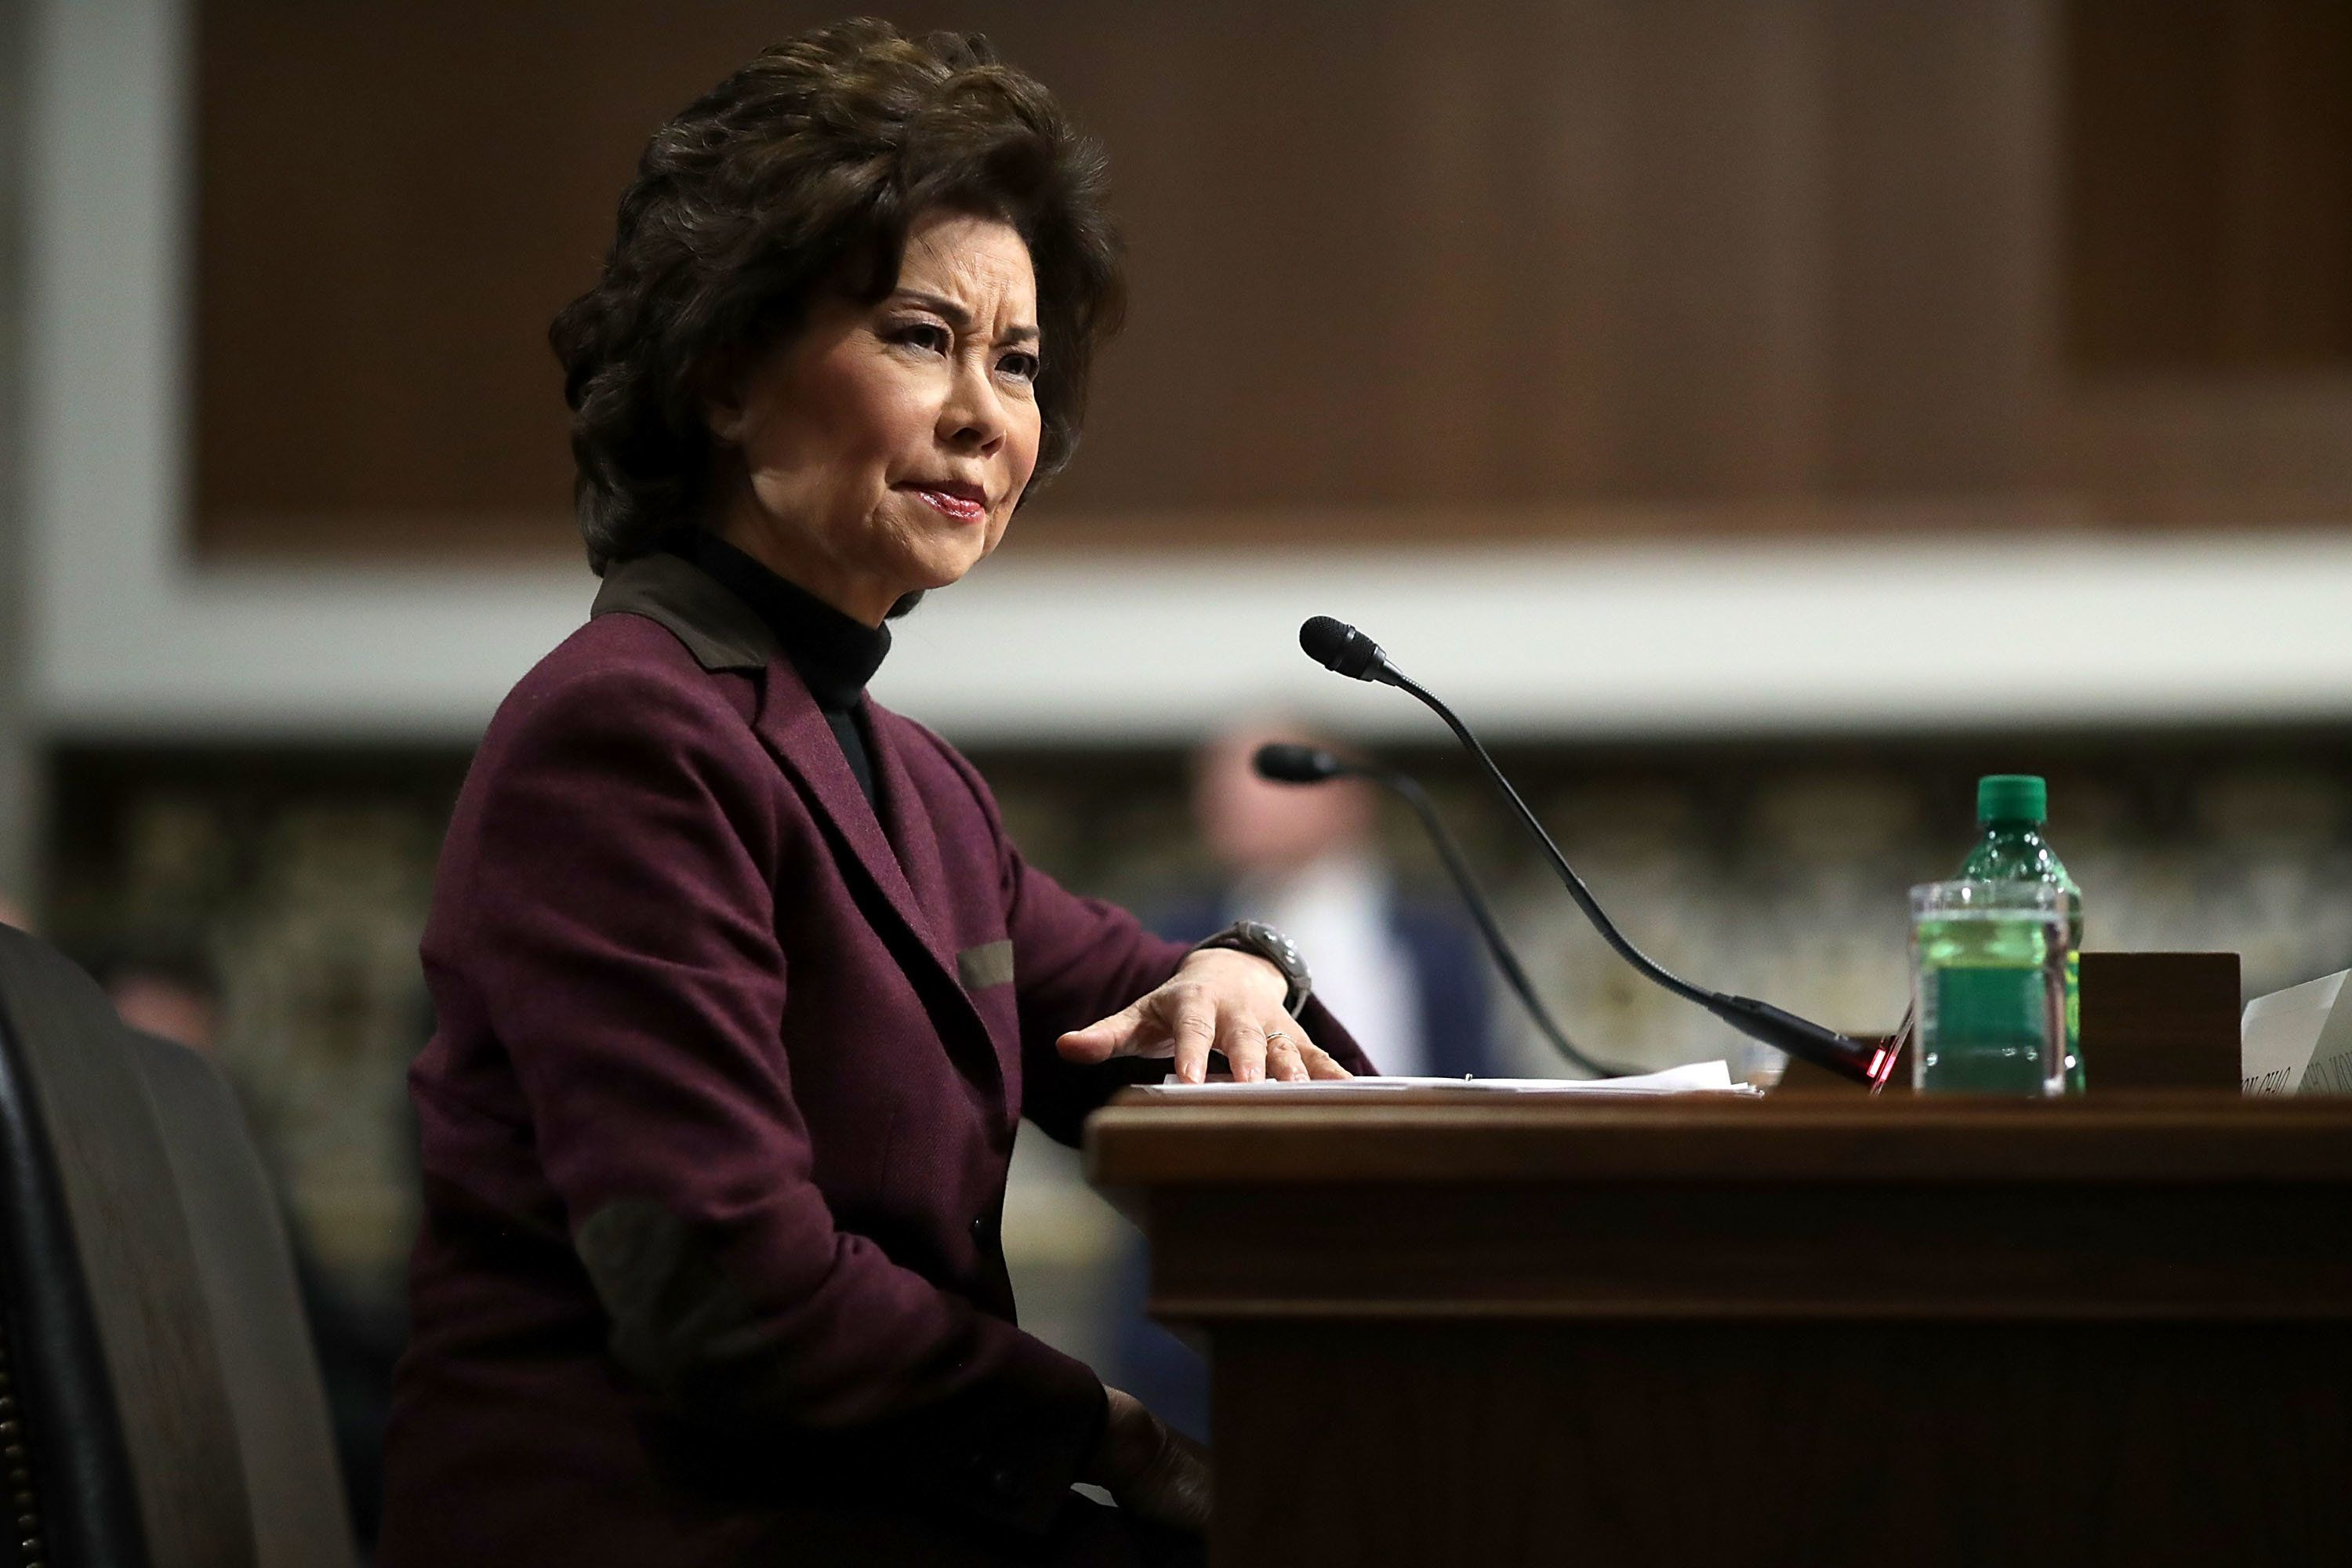 WASHINGTON, DC - JANUARY 11:  Elaine Chao testifies during her confirmation hearing to be the next U.S. secretary of transportation before the Senate Commerce, Science and Transportation Committee in the Dirksen Senate Office Building on Capitol Hill January 11, 2017 in Washington, DC. Chao, who has previously served as secretary of the Labor Department, was nominated by President-elect Donald Trump.  (Photo by Chip Somodevilla/Getty Images)